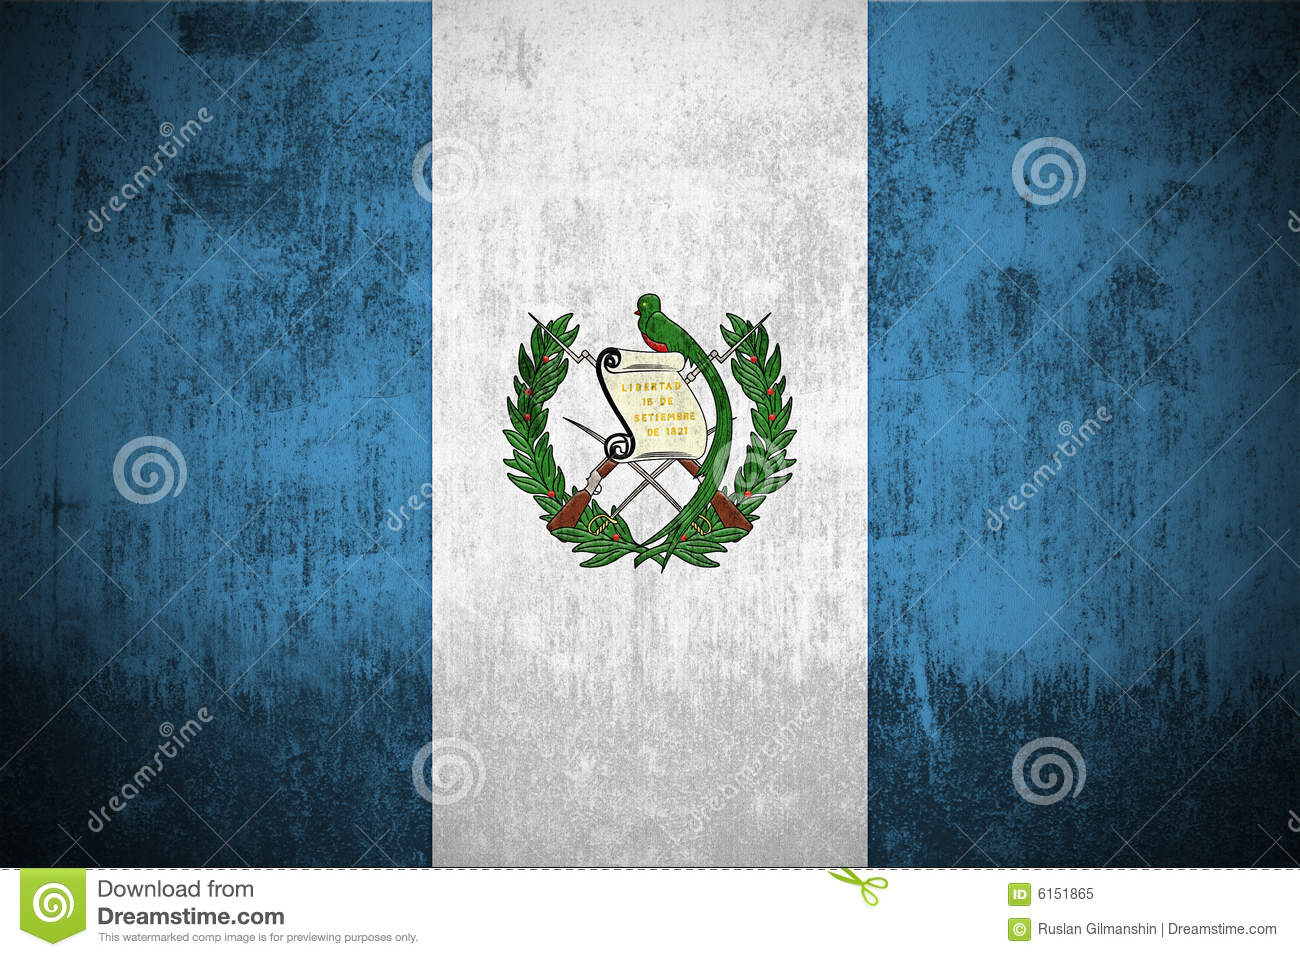 Images of Guatemala Grunge Flag By - #SC